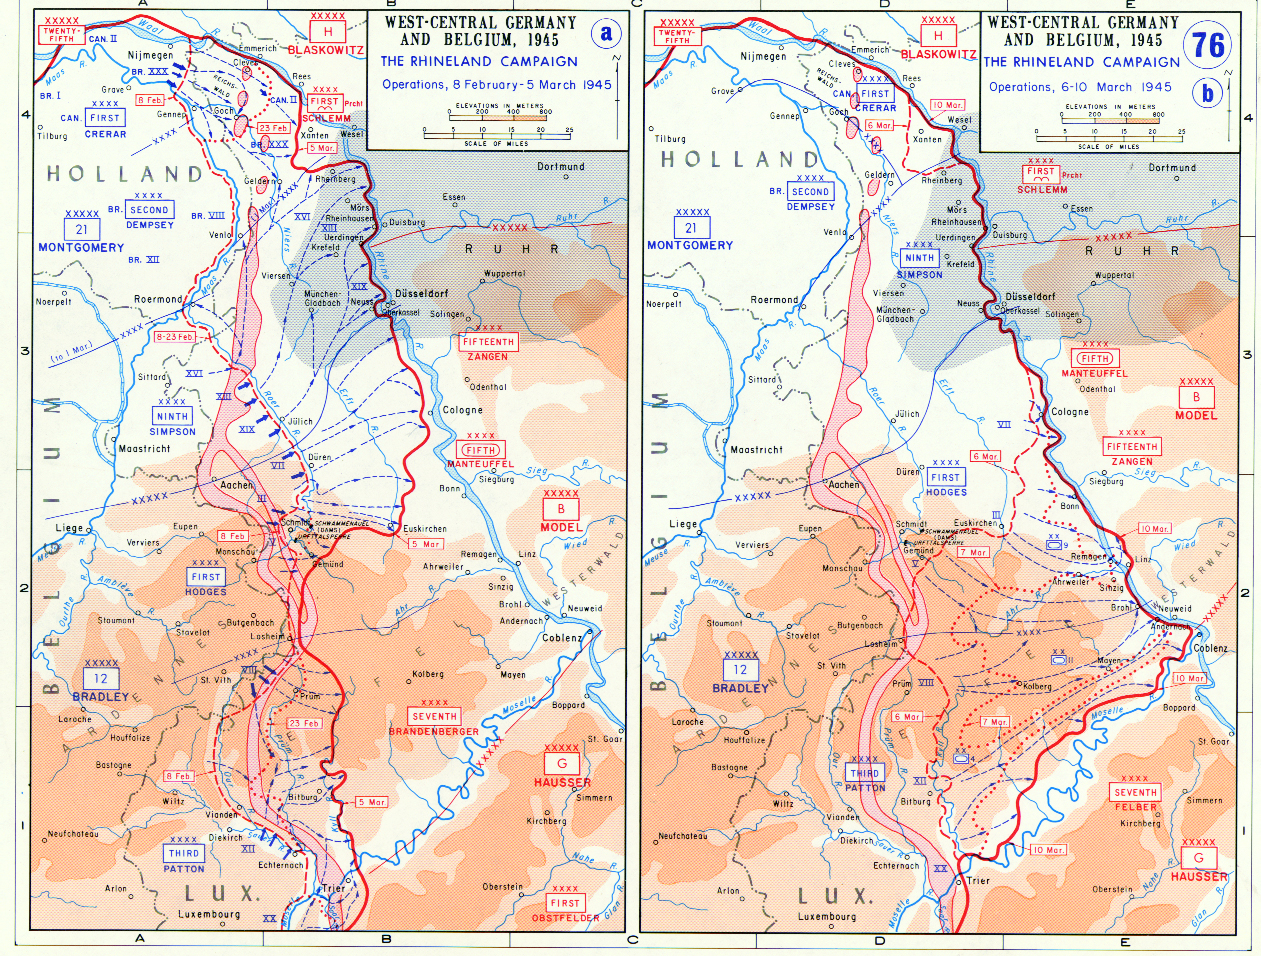 germany the nazis maps the rhineland campaign in west germany and belgium